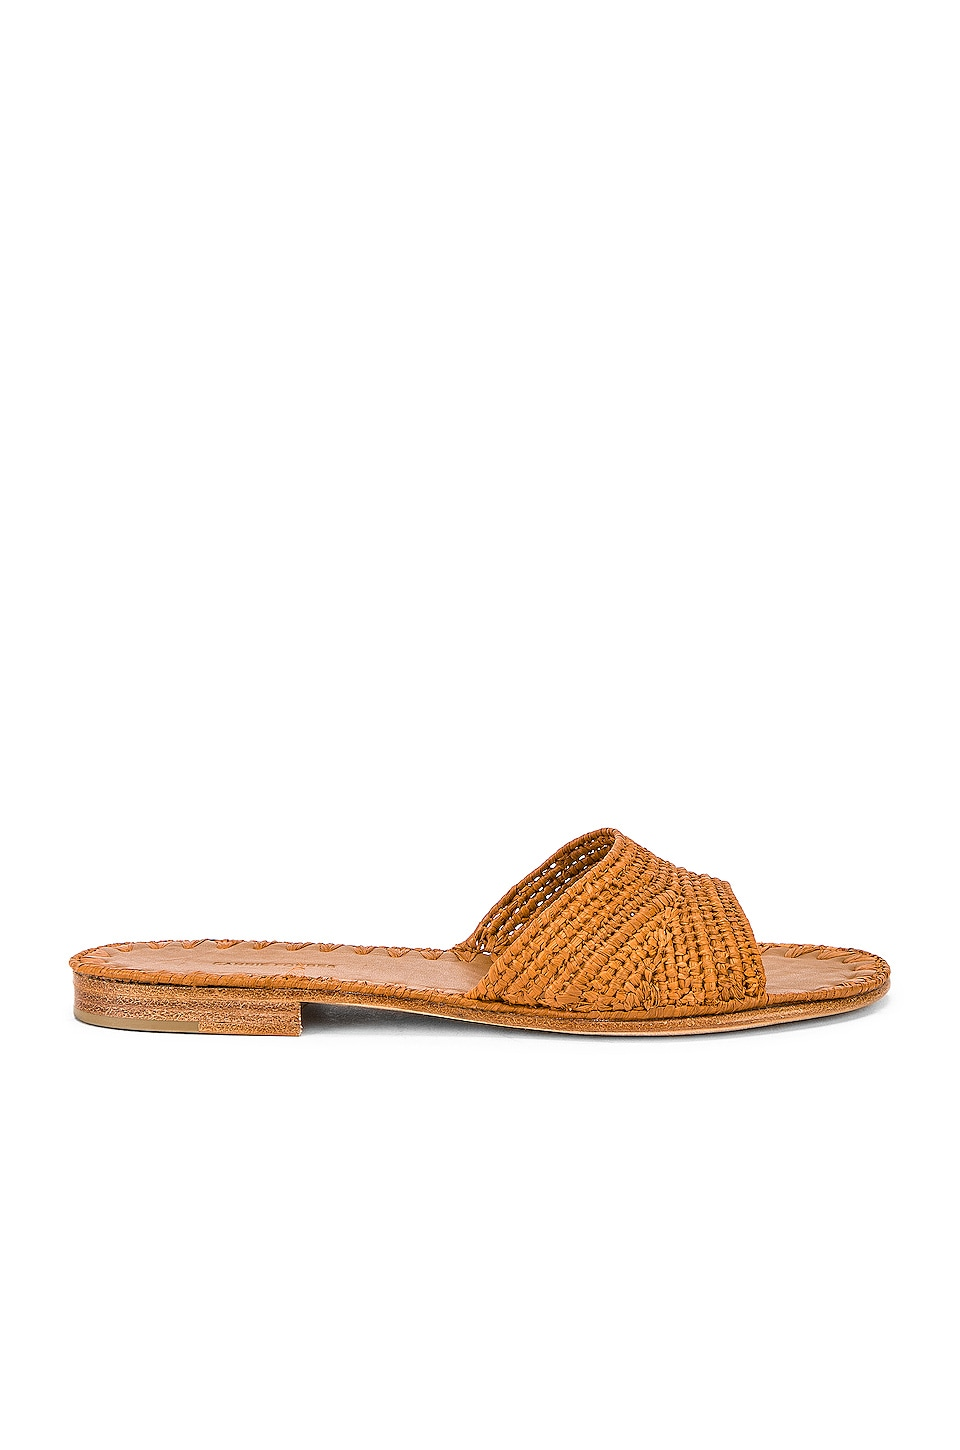 Carrie Forbes Fati Sandal in Cognac